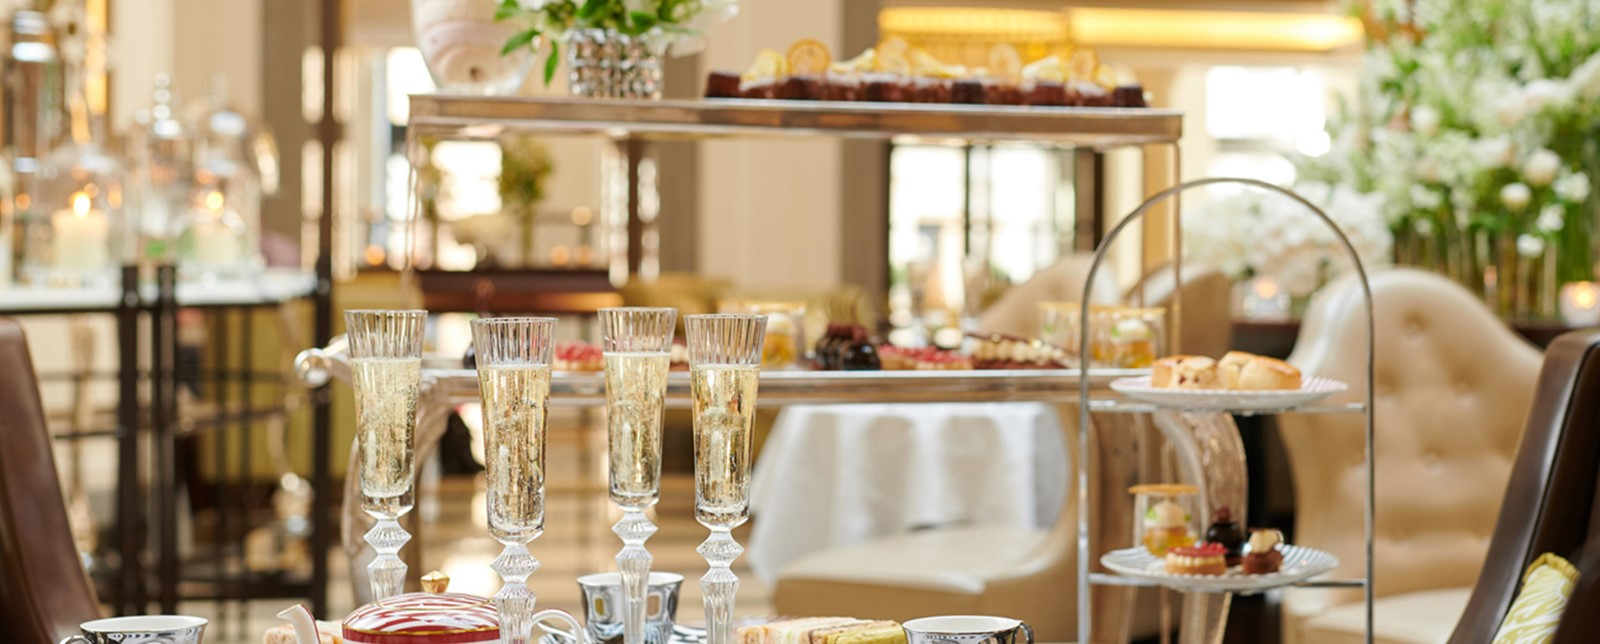 An afternoon tea spread of sandwiches, champagne, tea and desserts